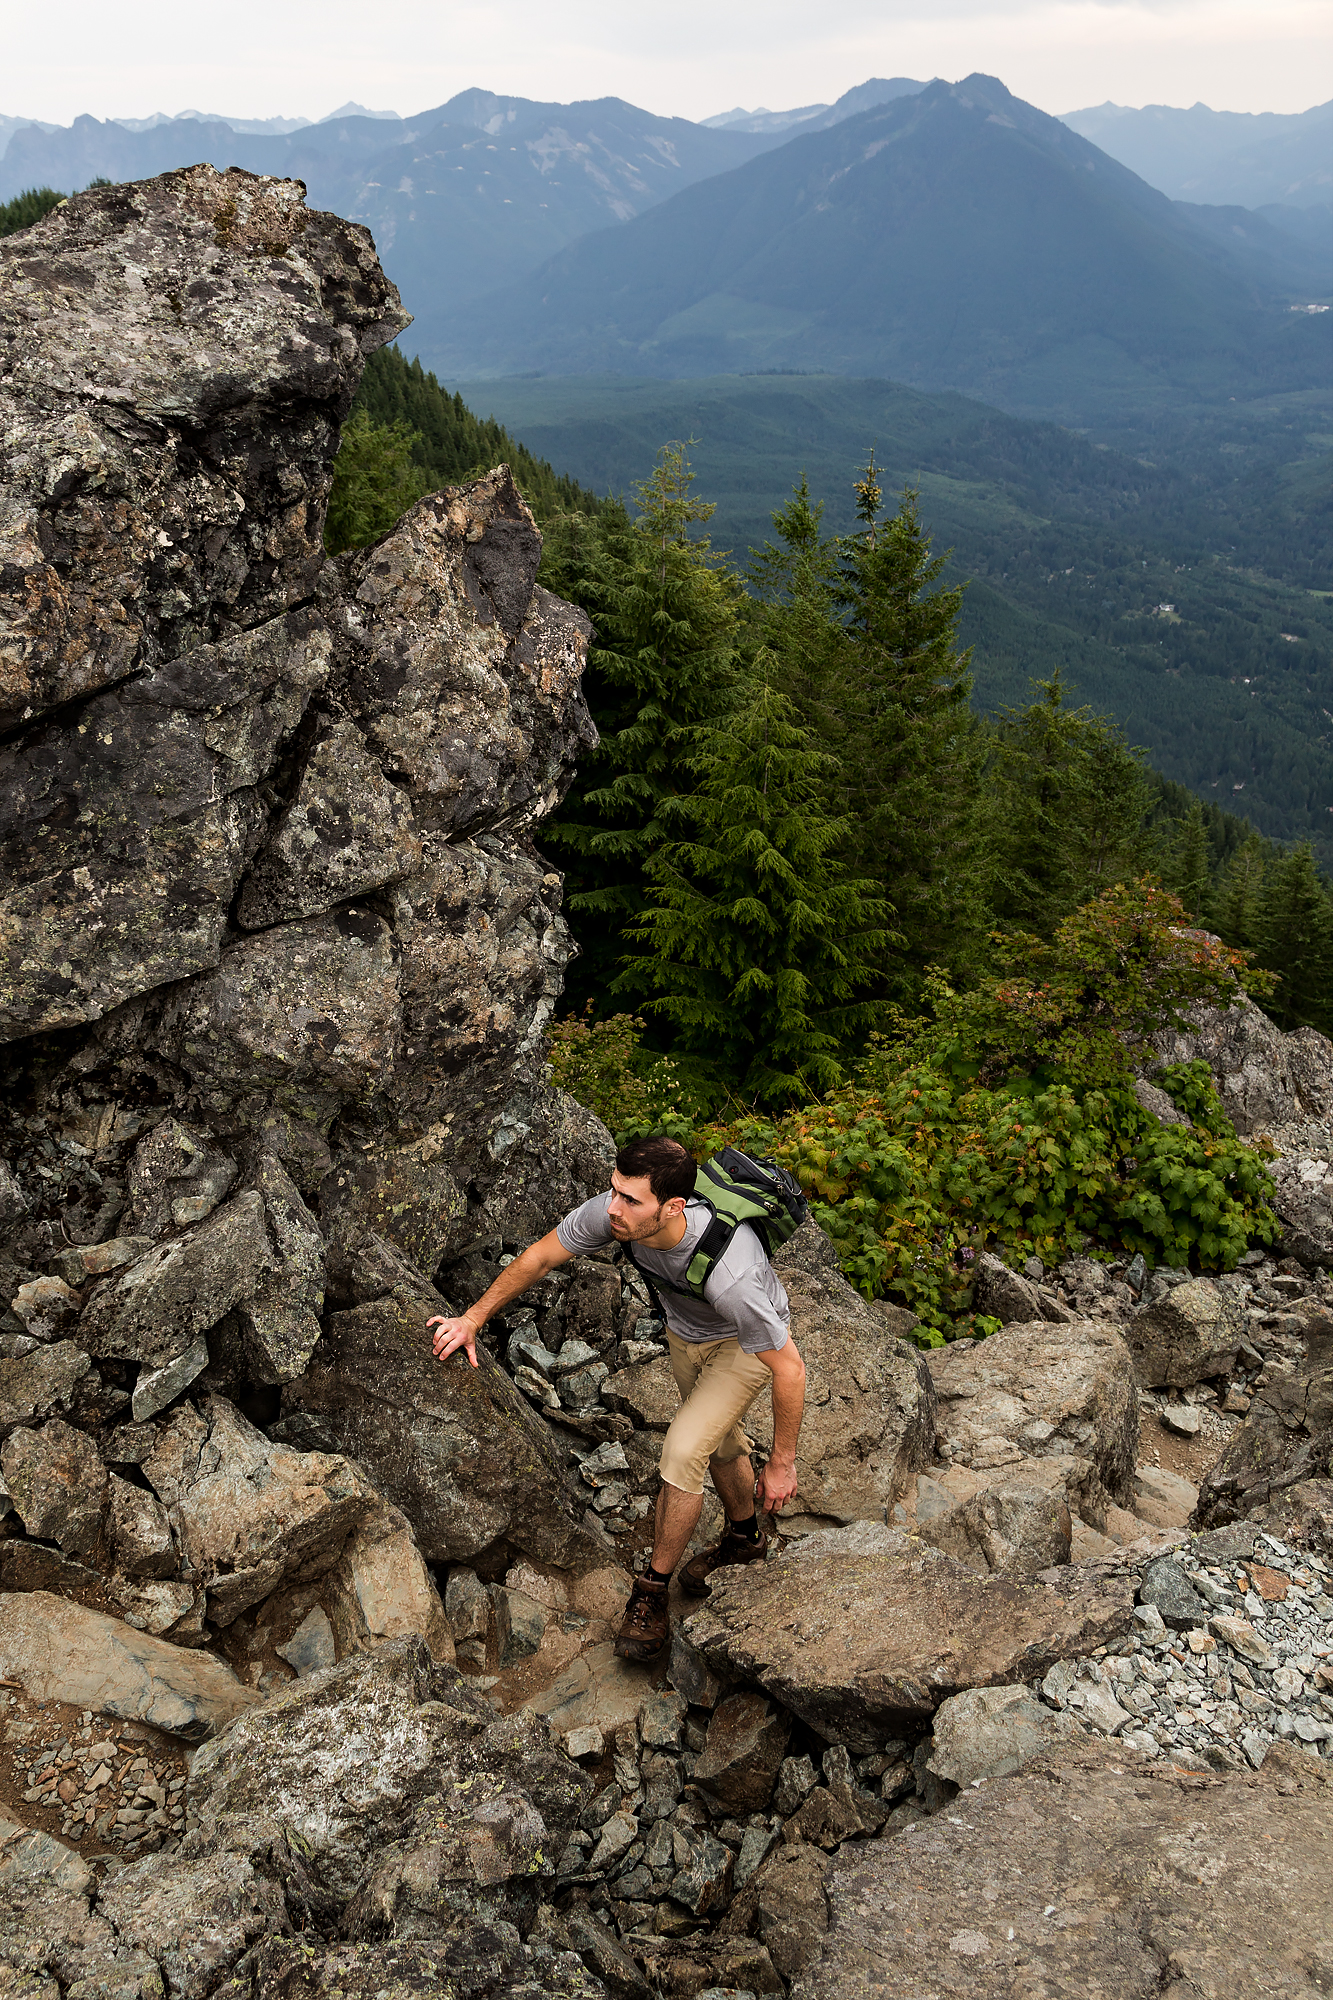 Nearing the top of Mount Si near North Bend, WA.